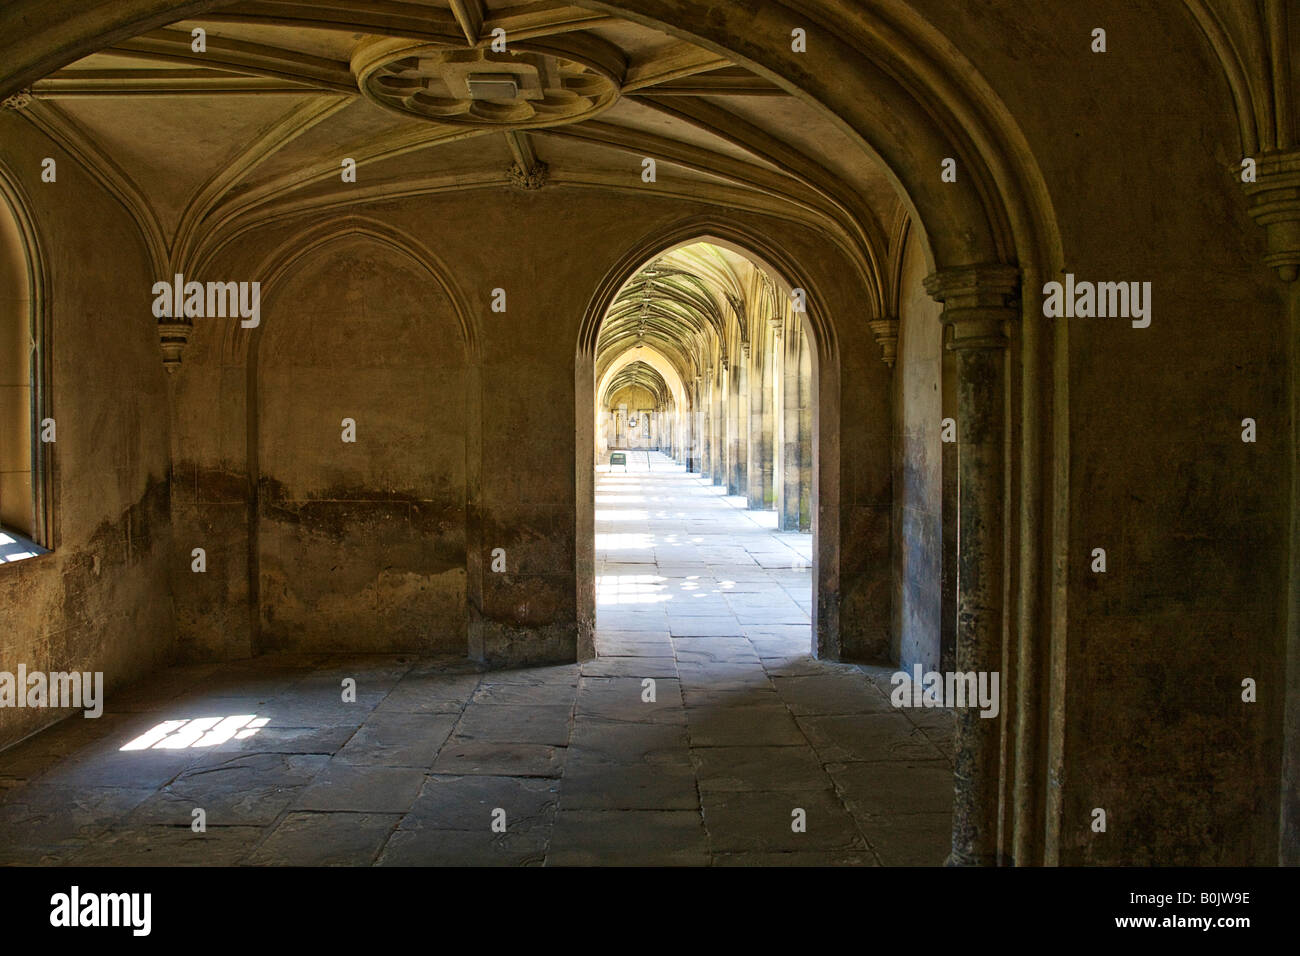 Cloisters from the bridge of sighs. St johns college. Cambridge. - Stock Image